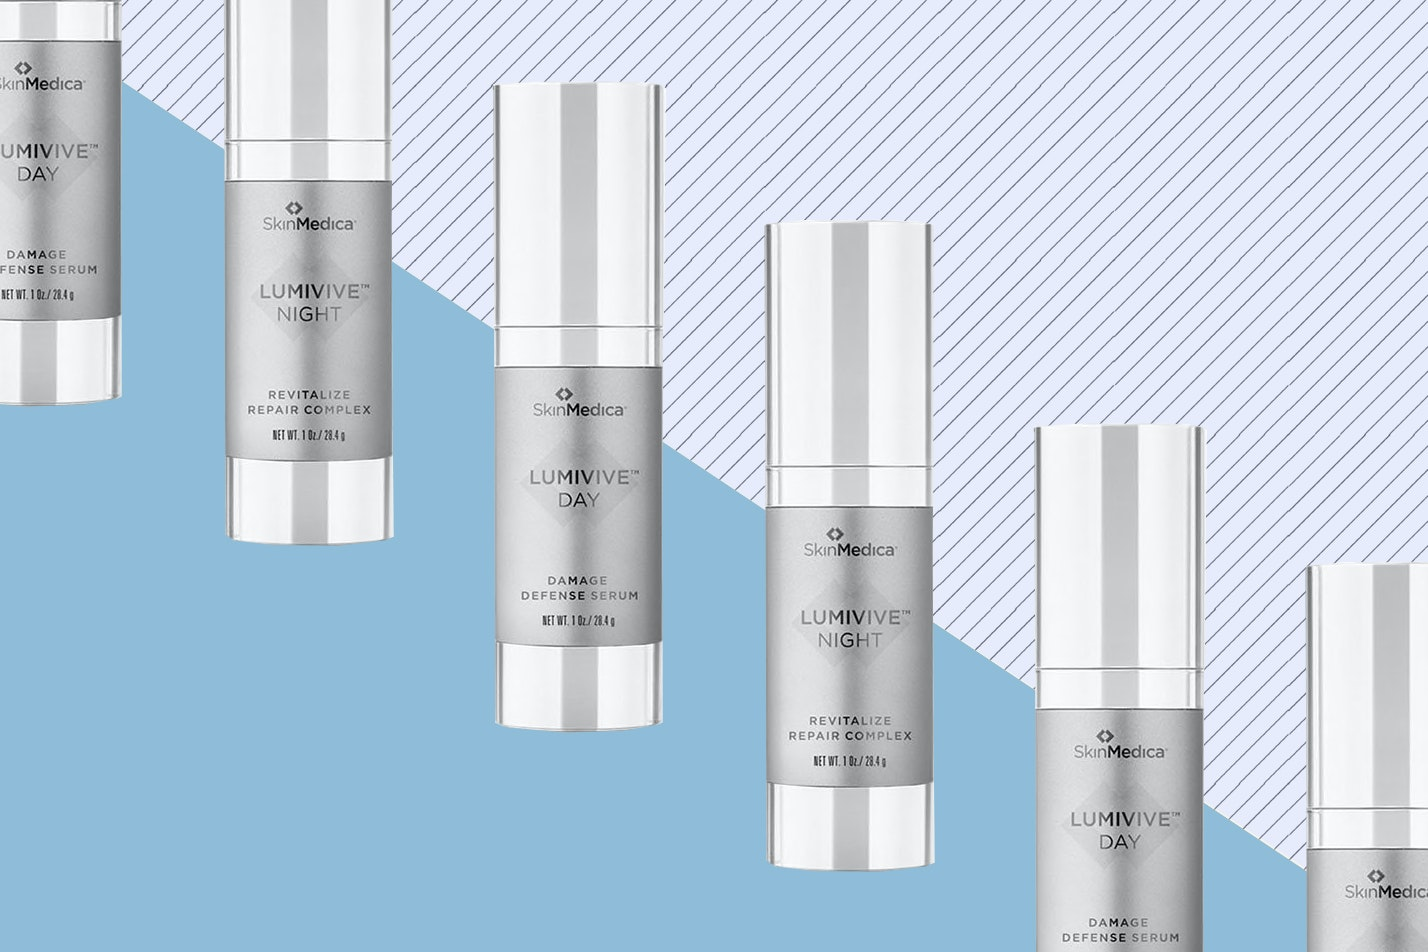 Review: The New SkinMedica LUMIVIVE System Protects Skin From the Aging Effects of Blue Light